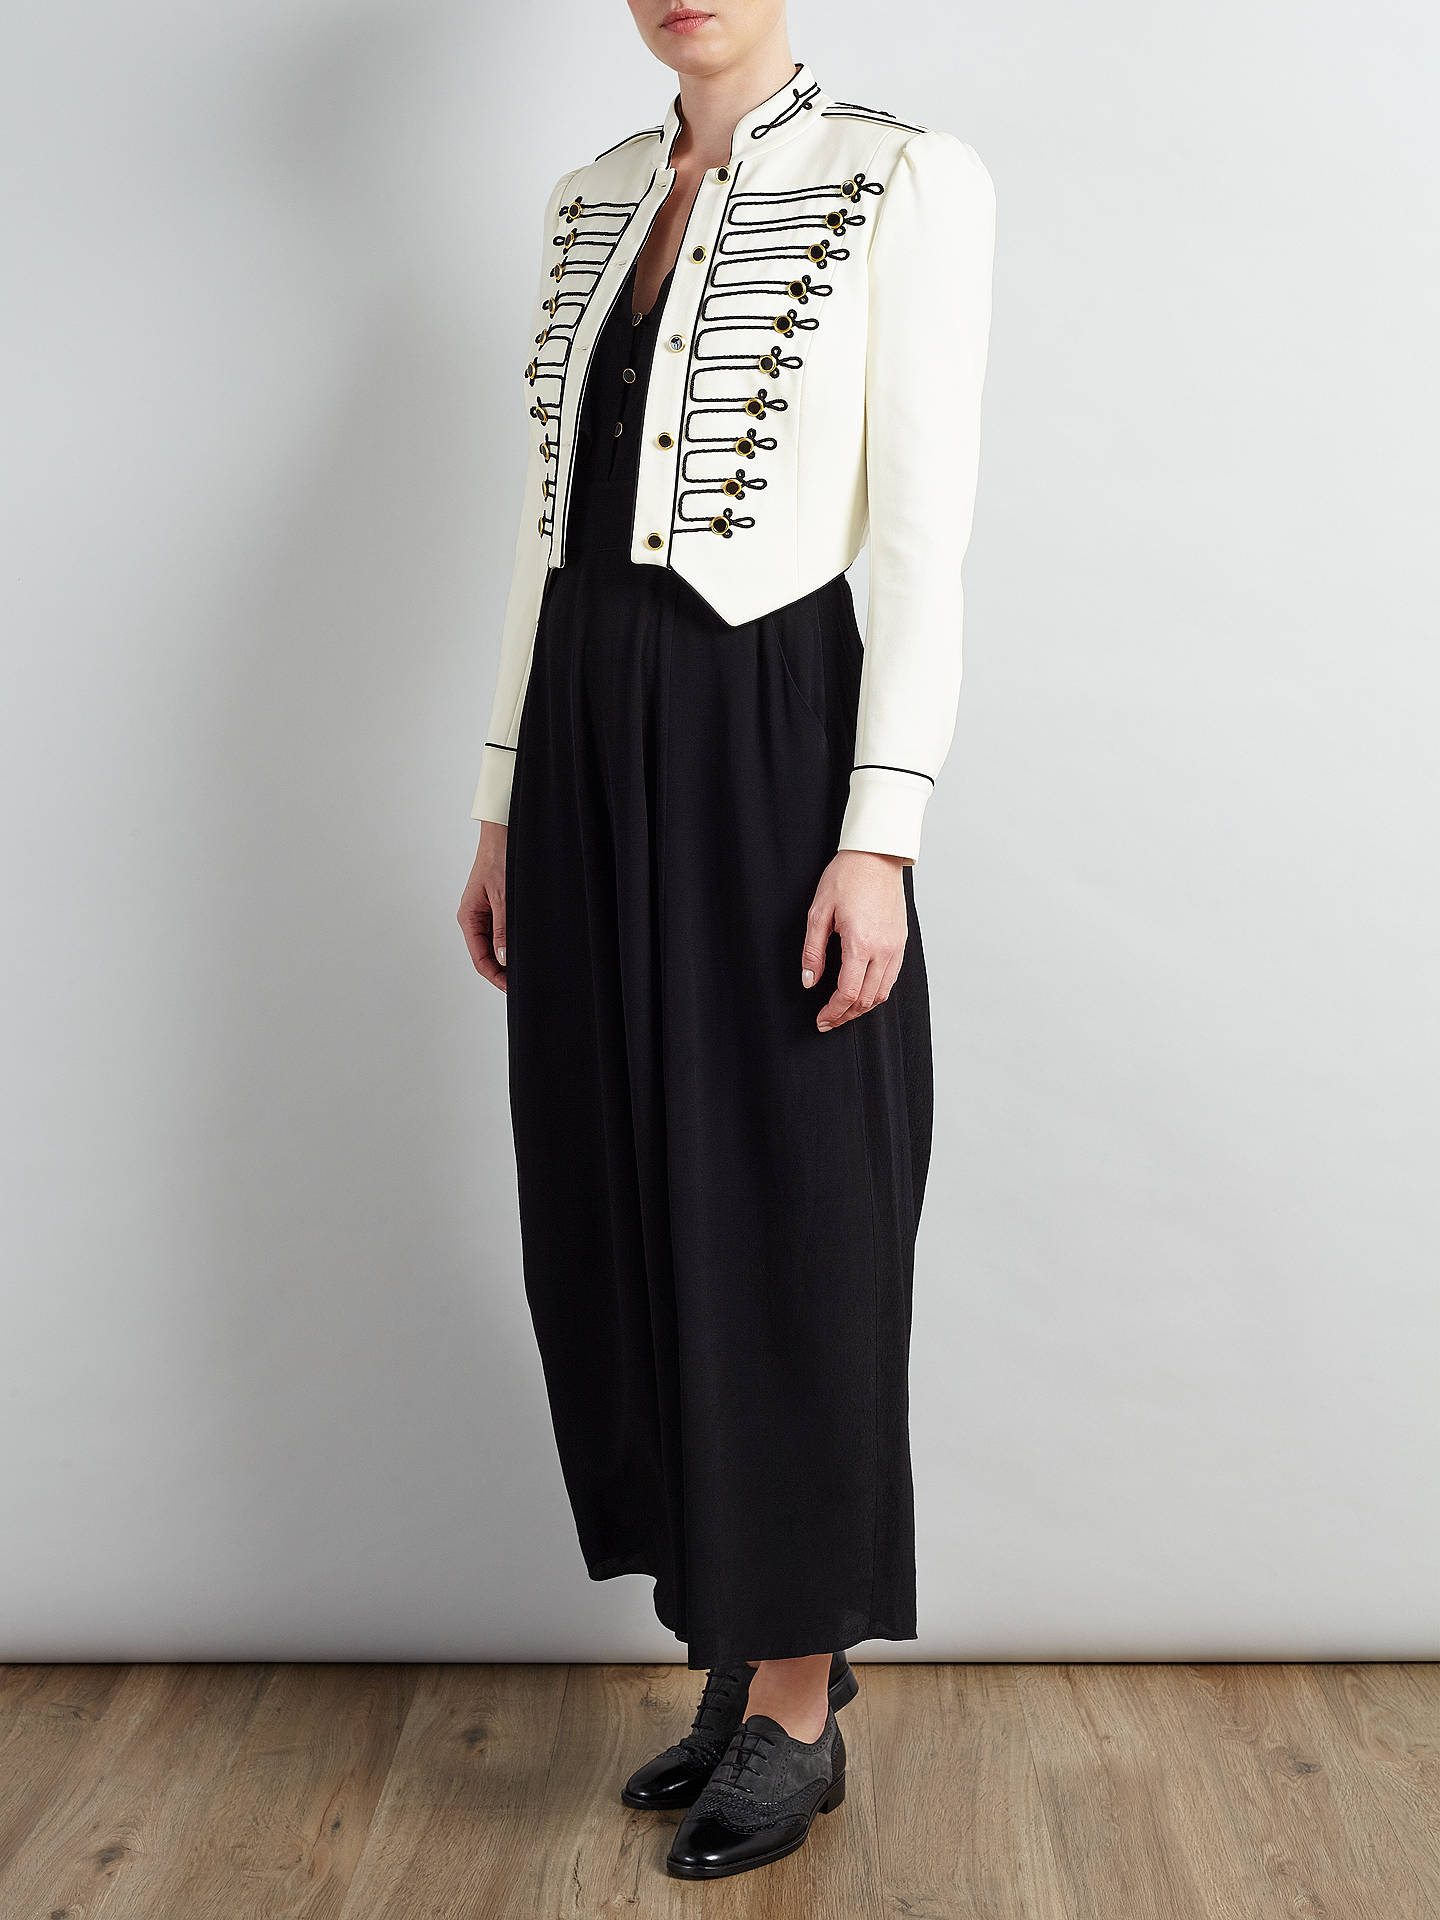 ... BuySomerset by Alice Temperley Military Jacket 917459d7f